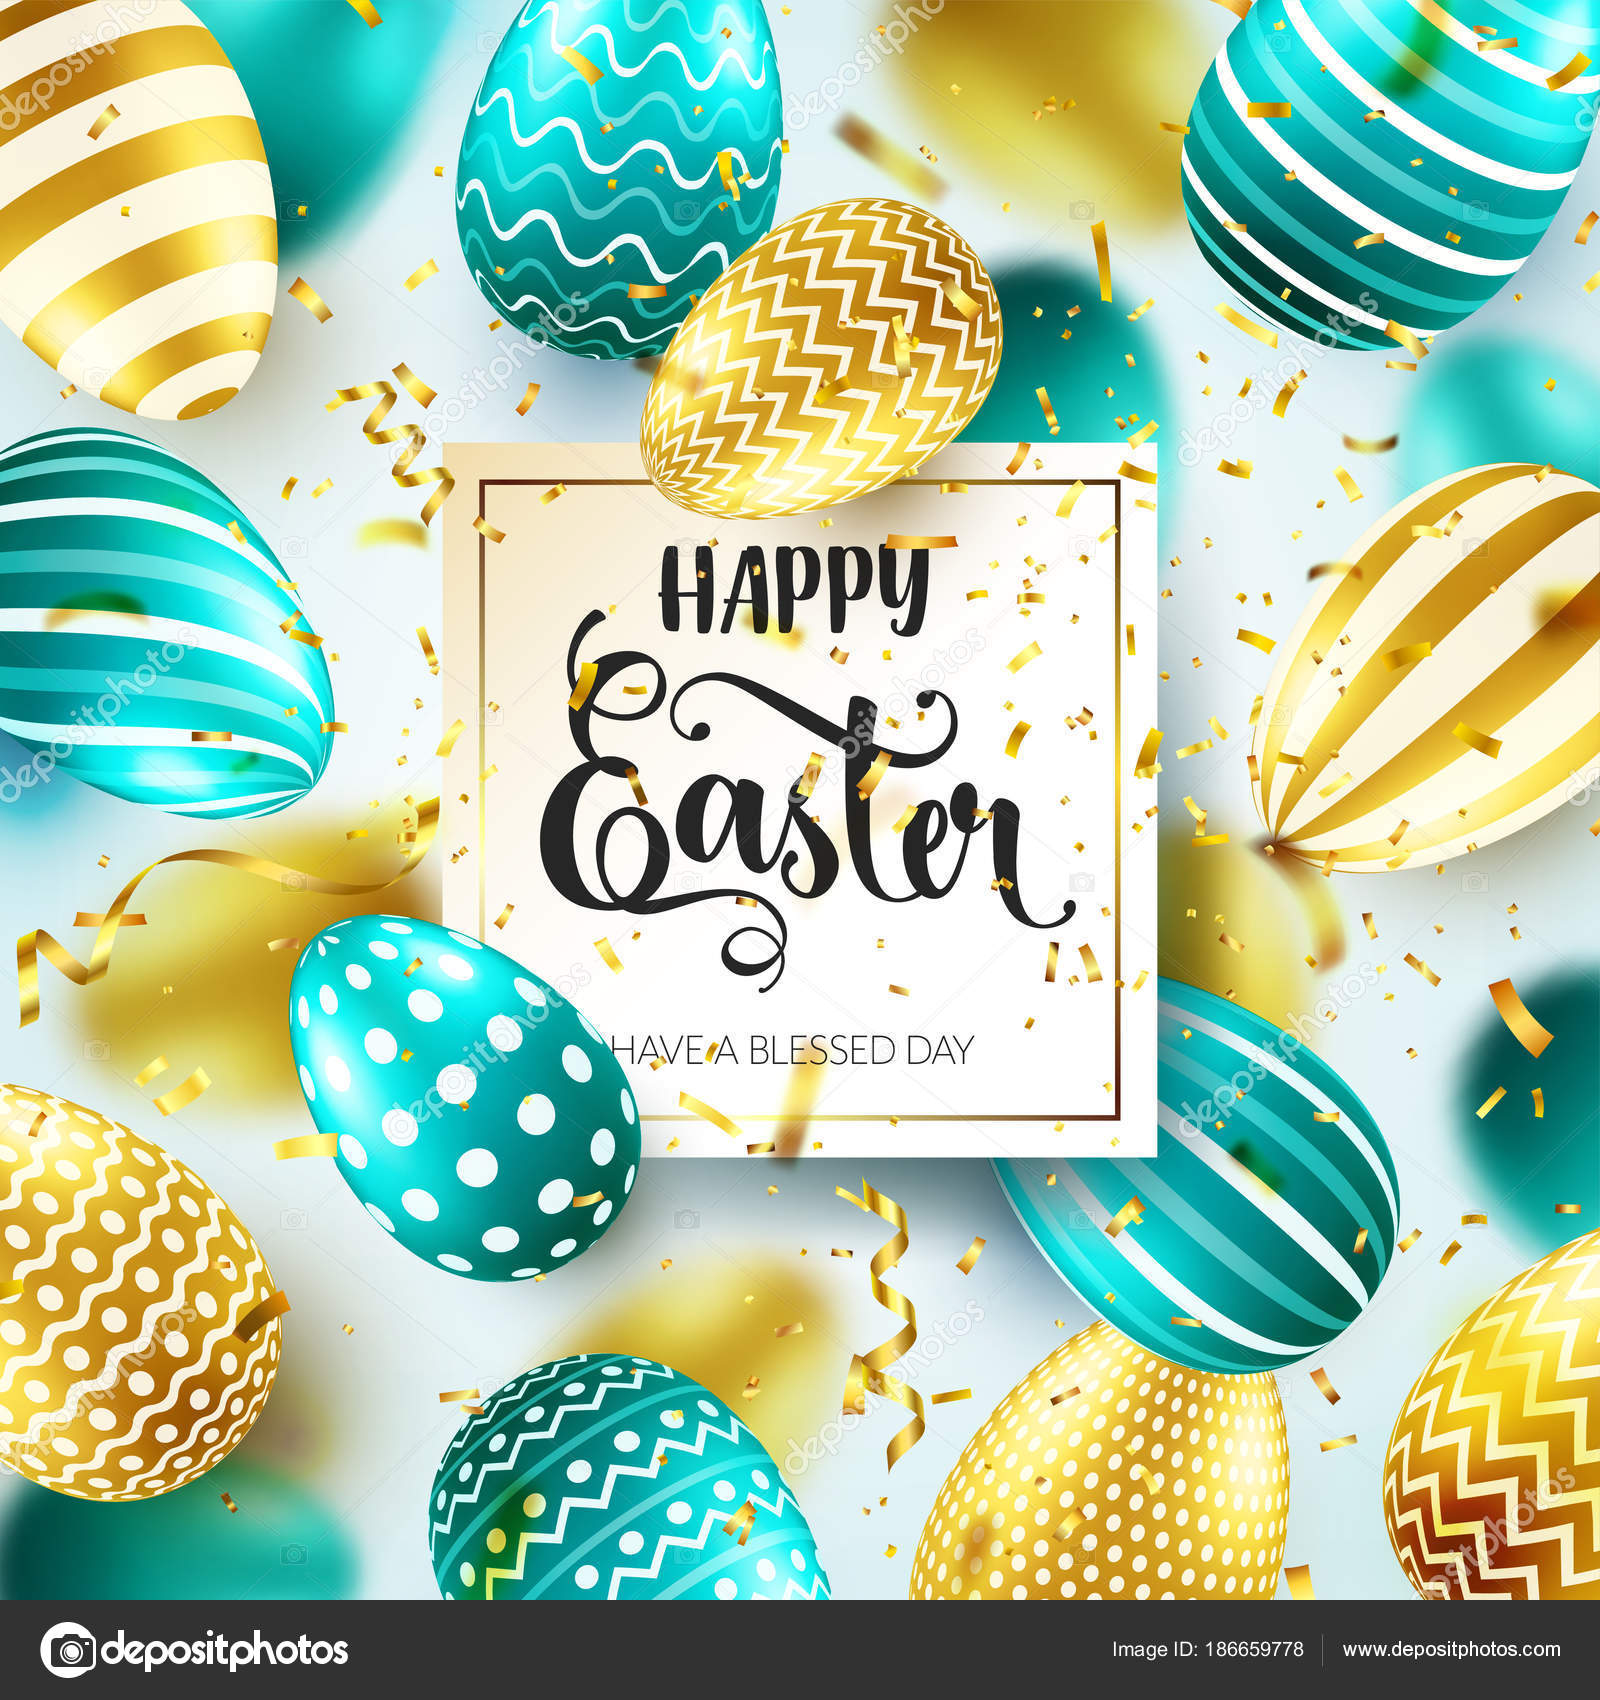 Easter golden green egg with calligraphic lettering greetings easter golden green egg with calligraphic lettering greetings confetti and ribbonaditional m4hsunfo